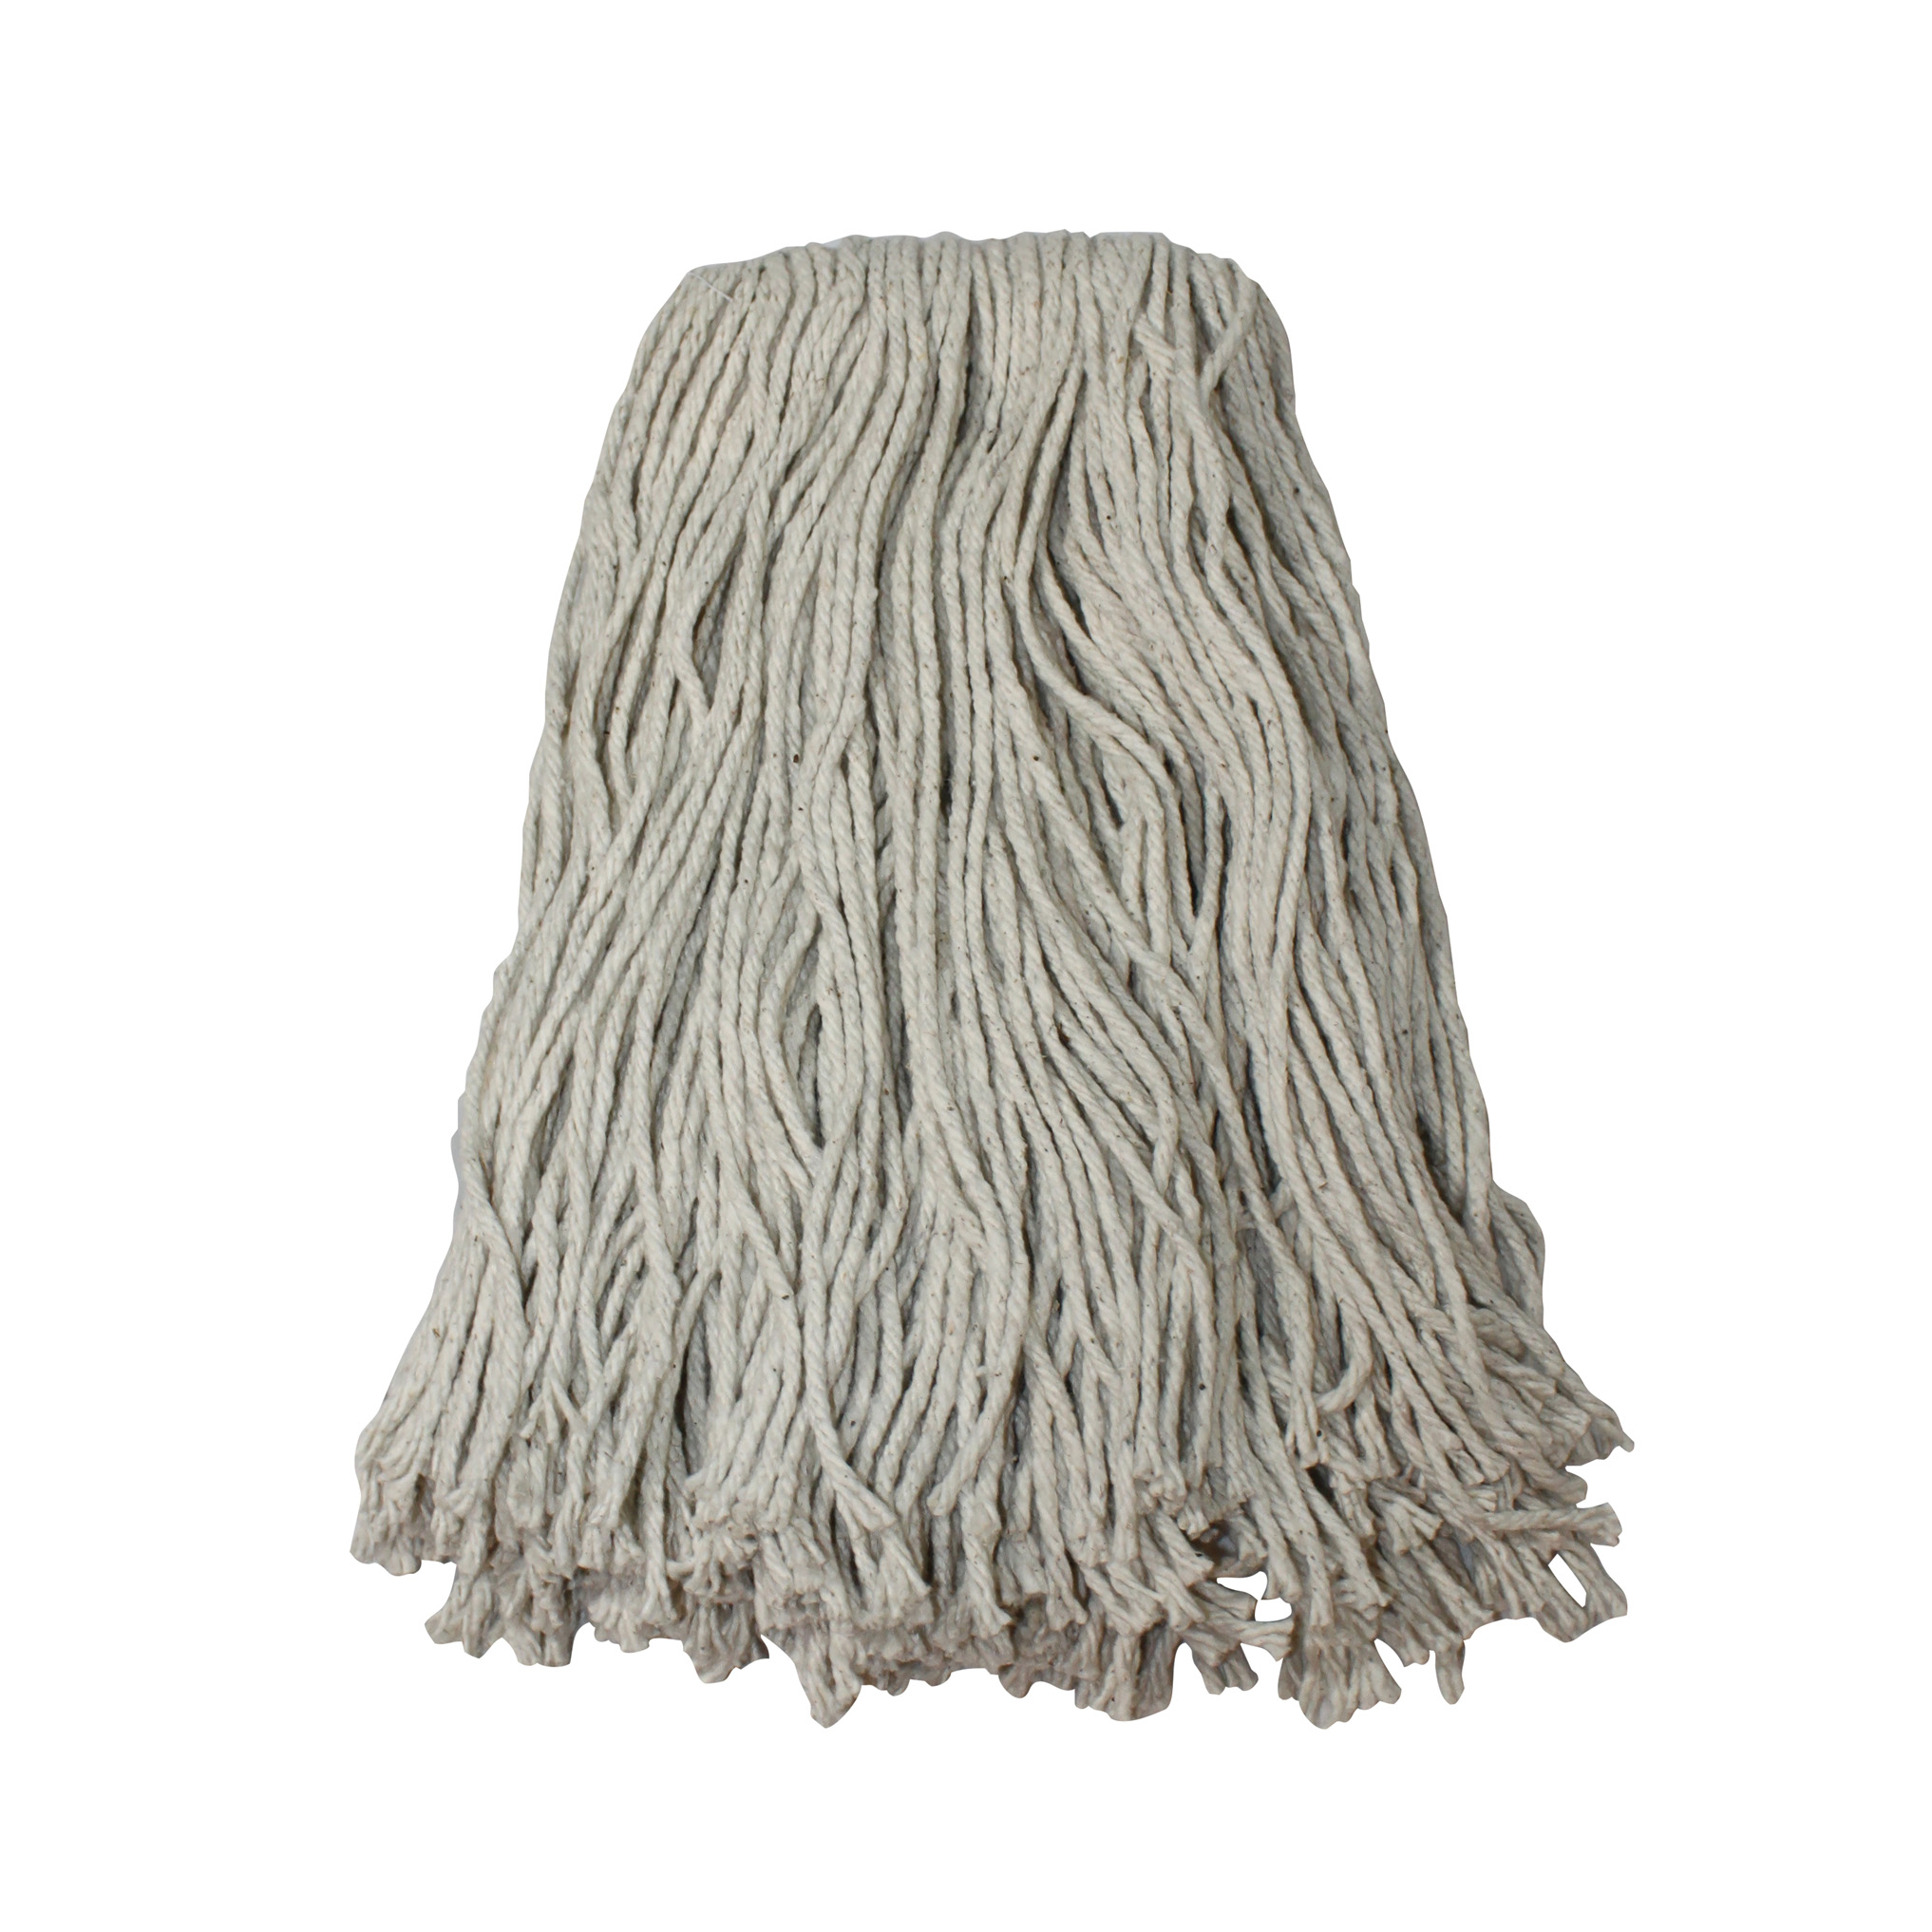 Impact Products S12112 wet mop head